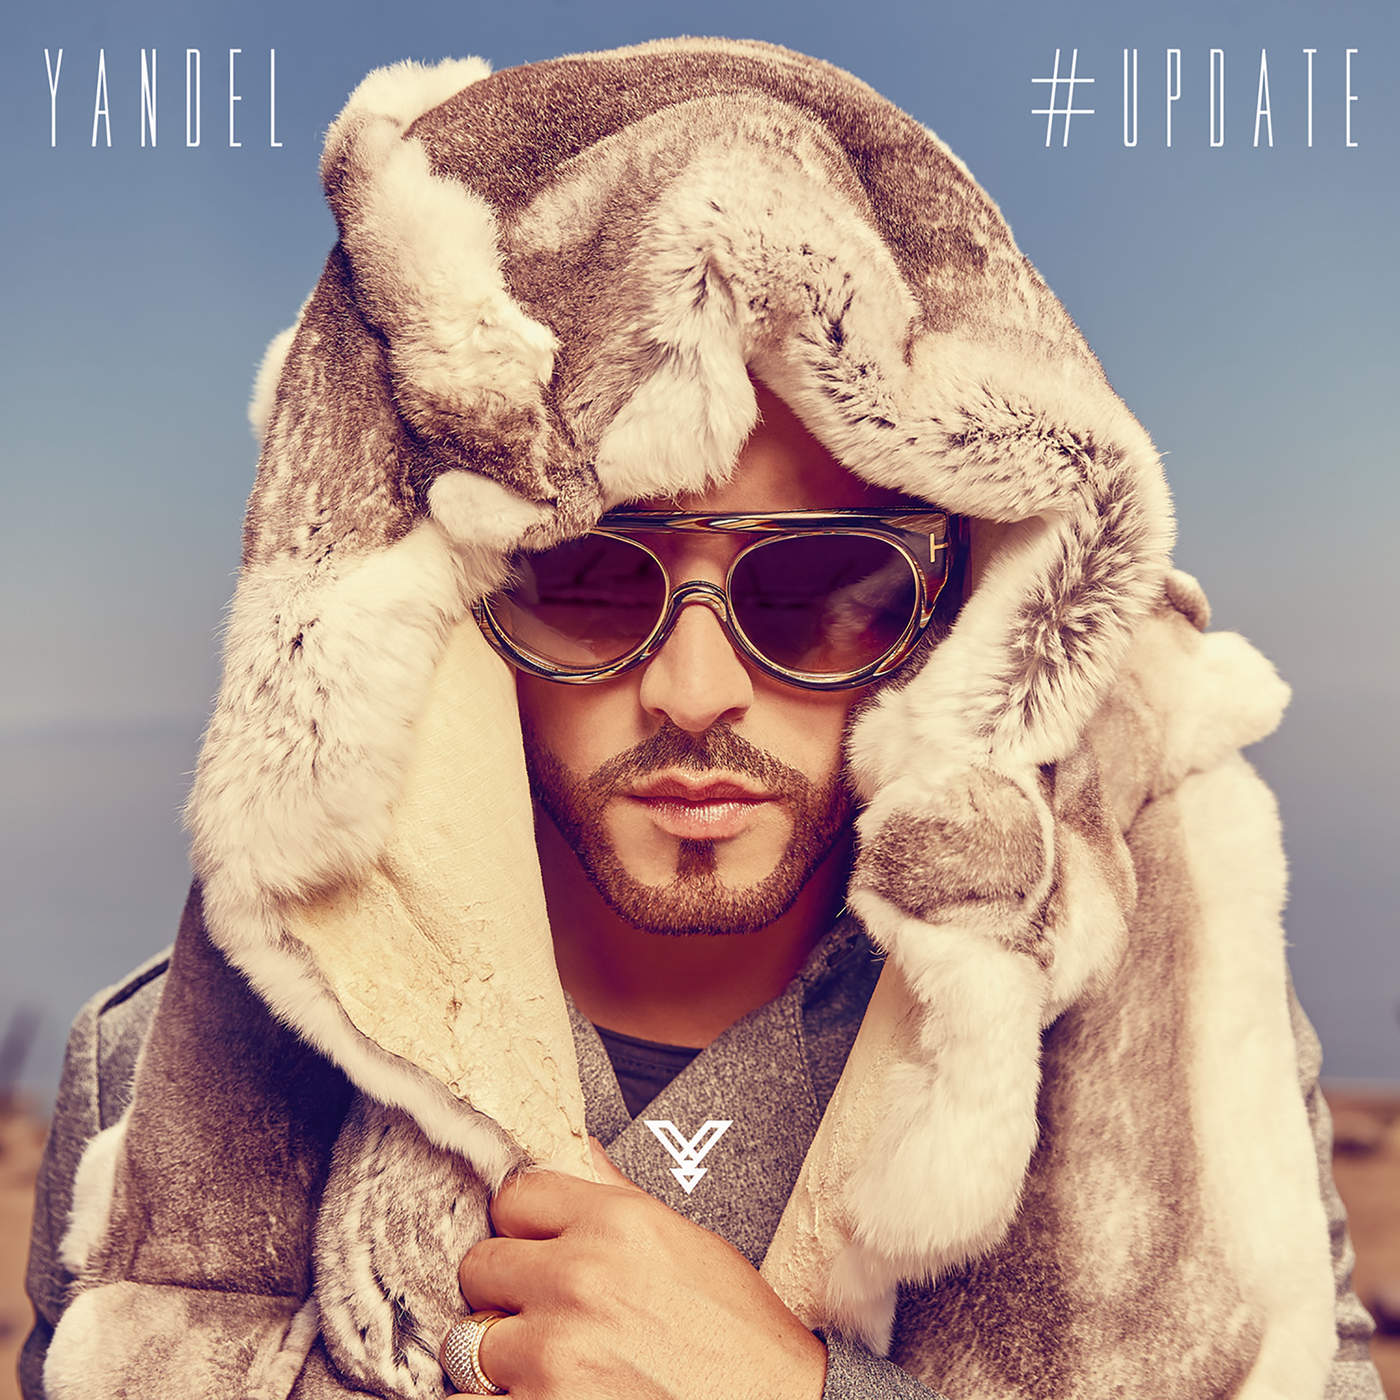 Yandel - Muy Personal (feat. J Balvin) - Single